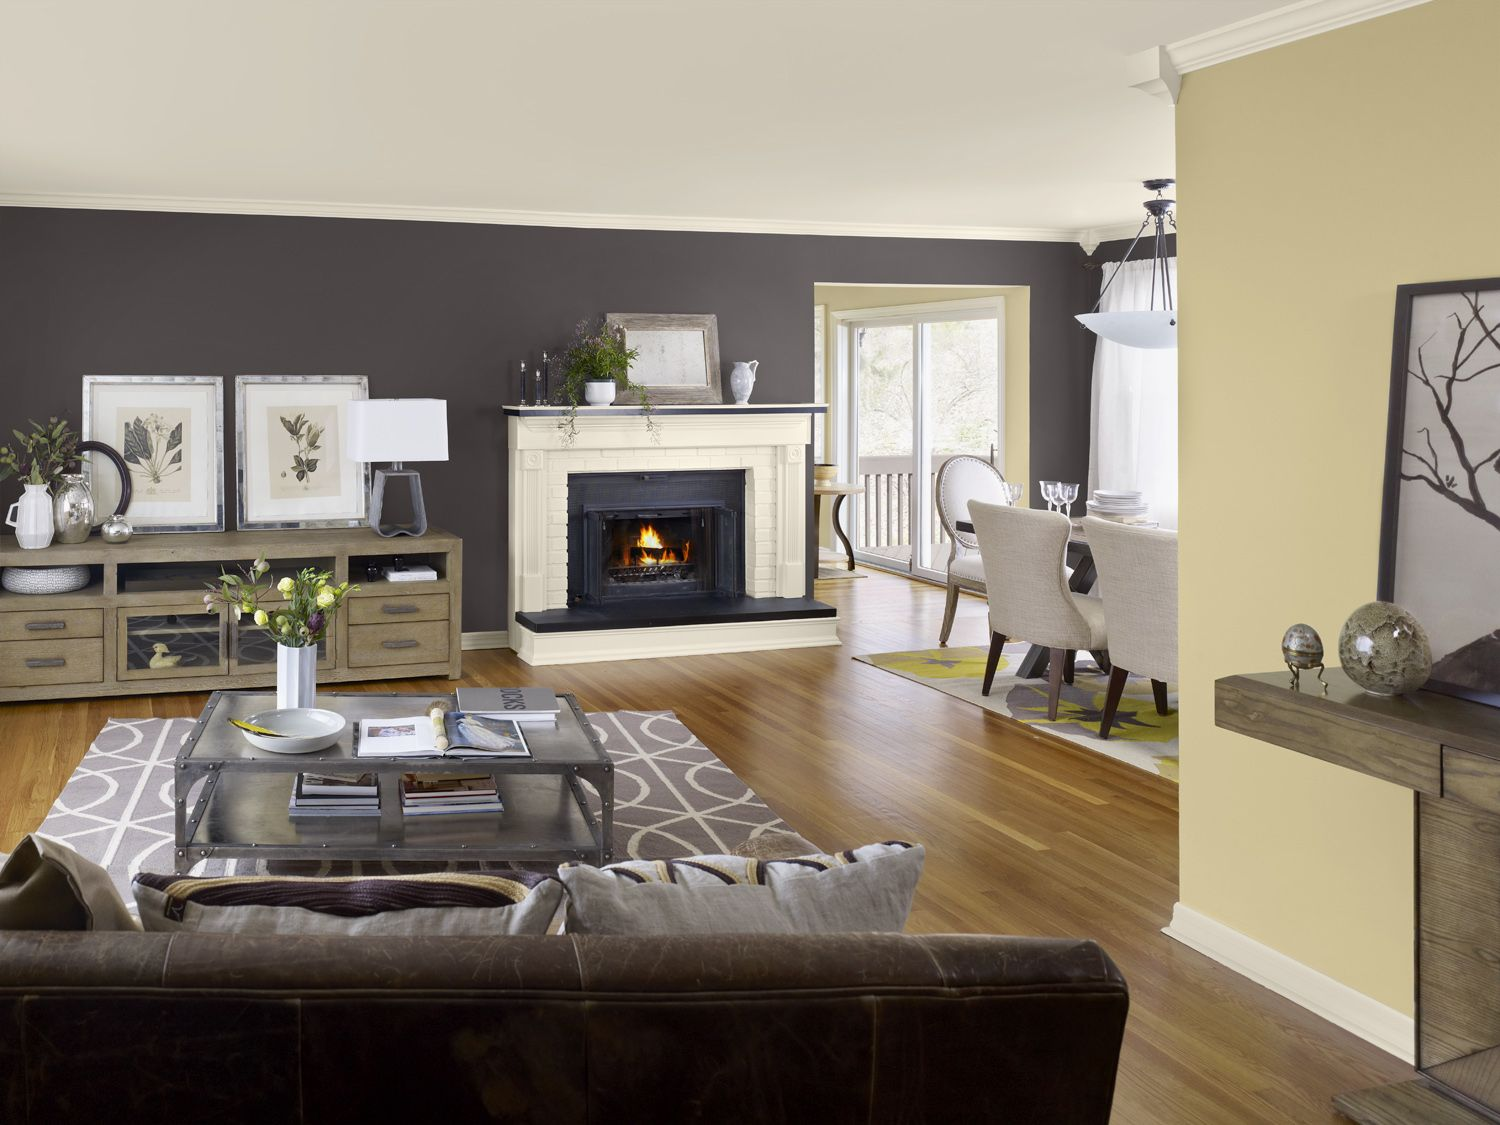 Artisan palette so rich and inviting walls pittsfield buff hc 24 · colors for living roomliving